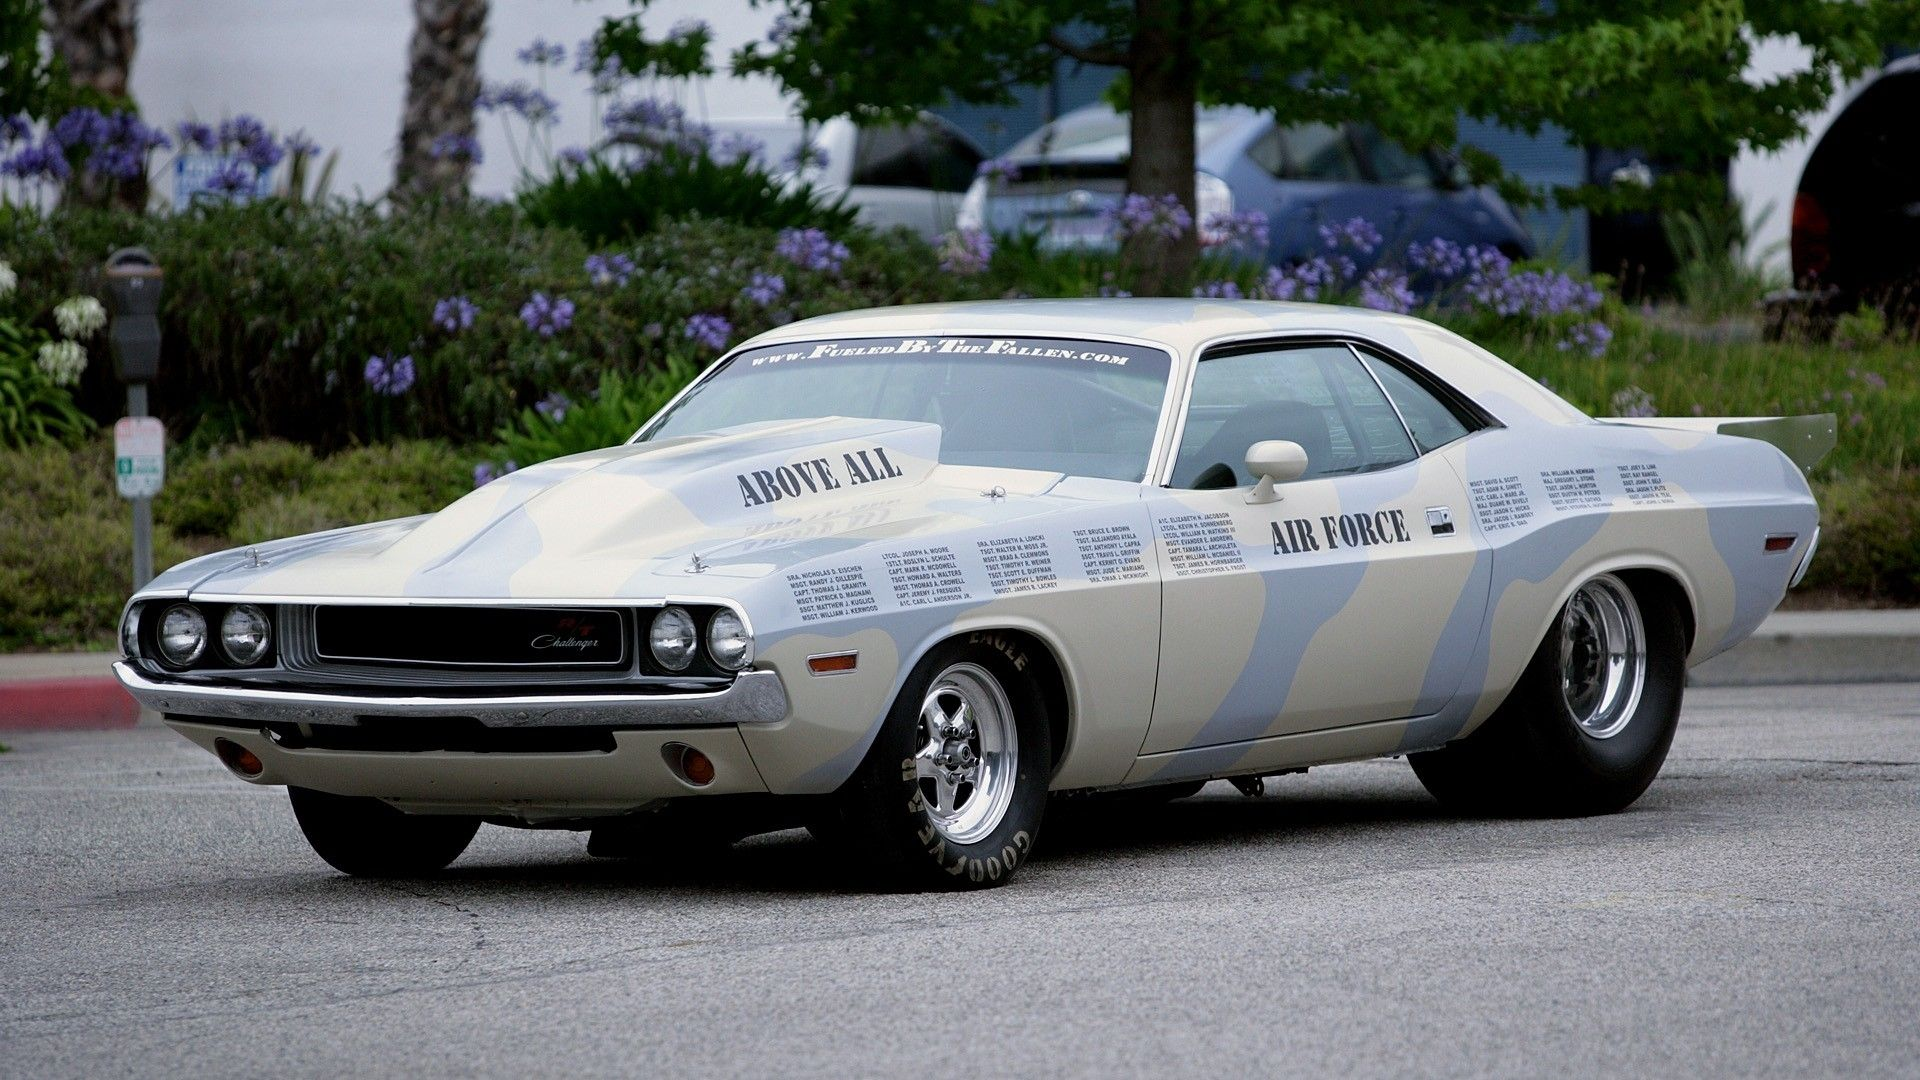 Pro Street Dodge Challenger America Cars Part C Pinterest - Epic stunt driving dodge challenger